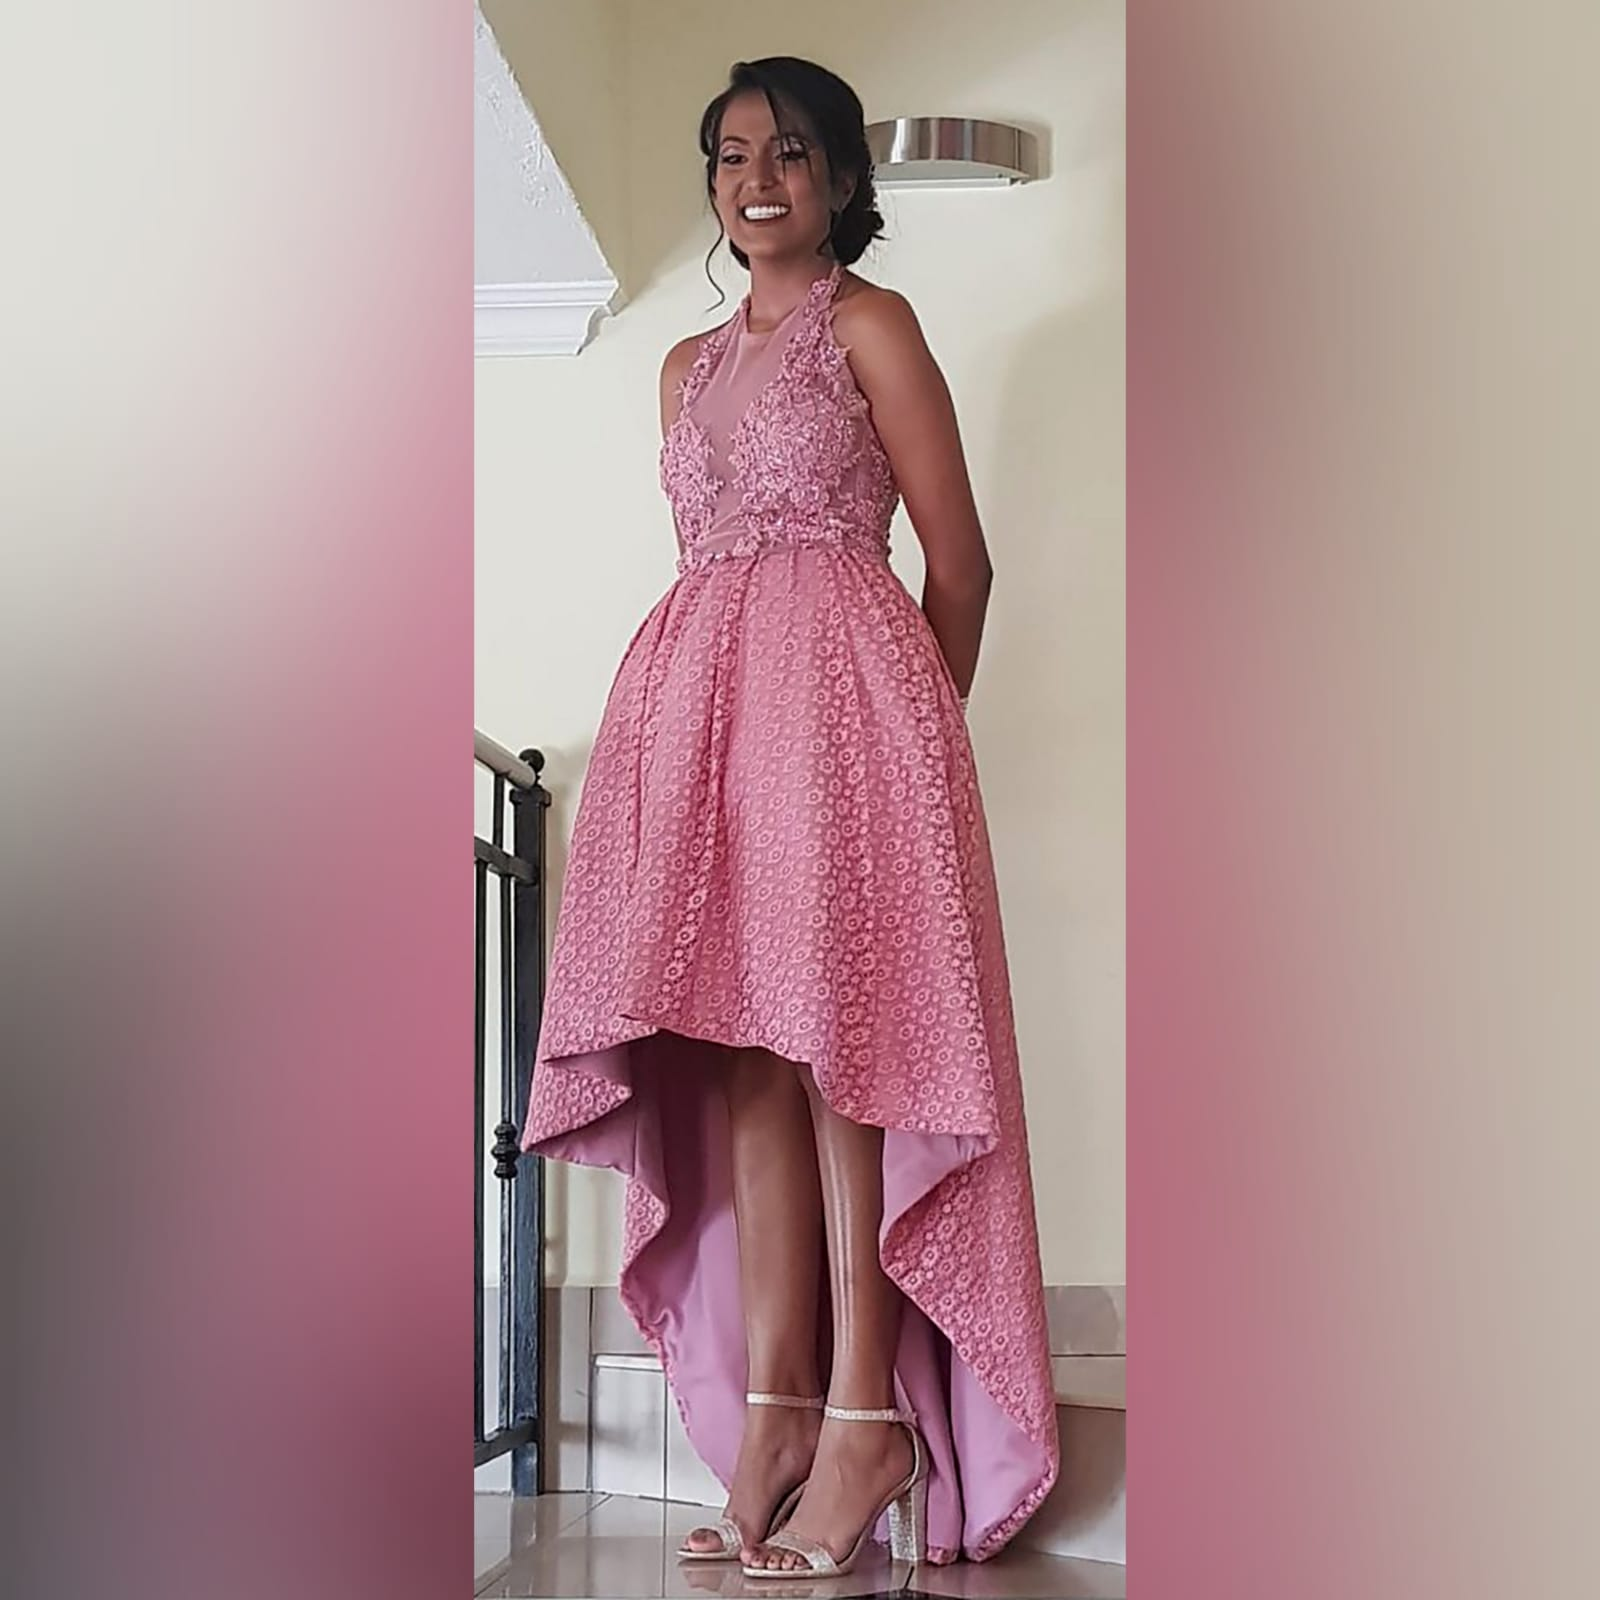 High low dusty pink prom dress 6 high low dusty pink prom dress with an illusion bodice detailed with beaded lace. Bottom fully laced.